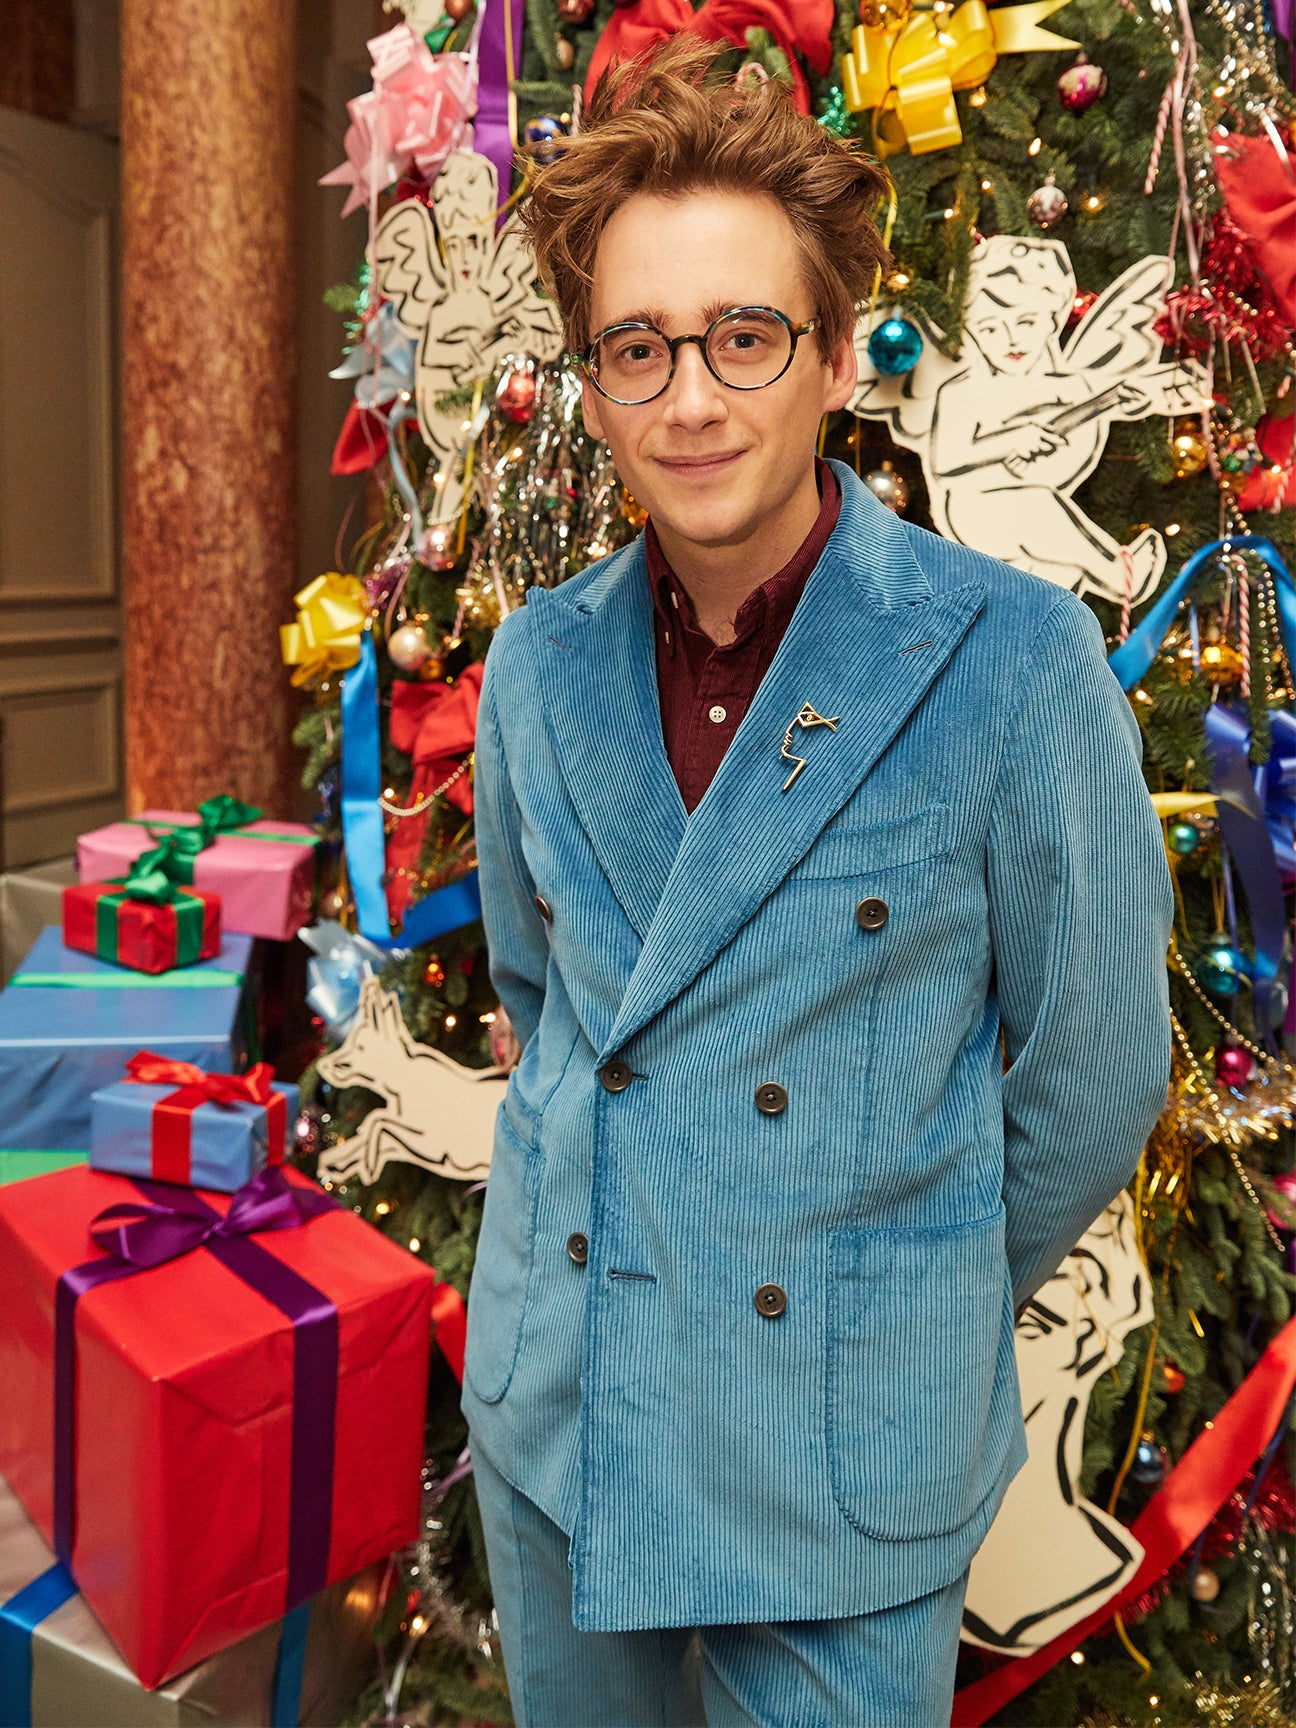 Luke Edward Hall's Christmas Tree Is Peak Maximalism